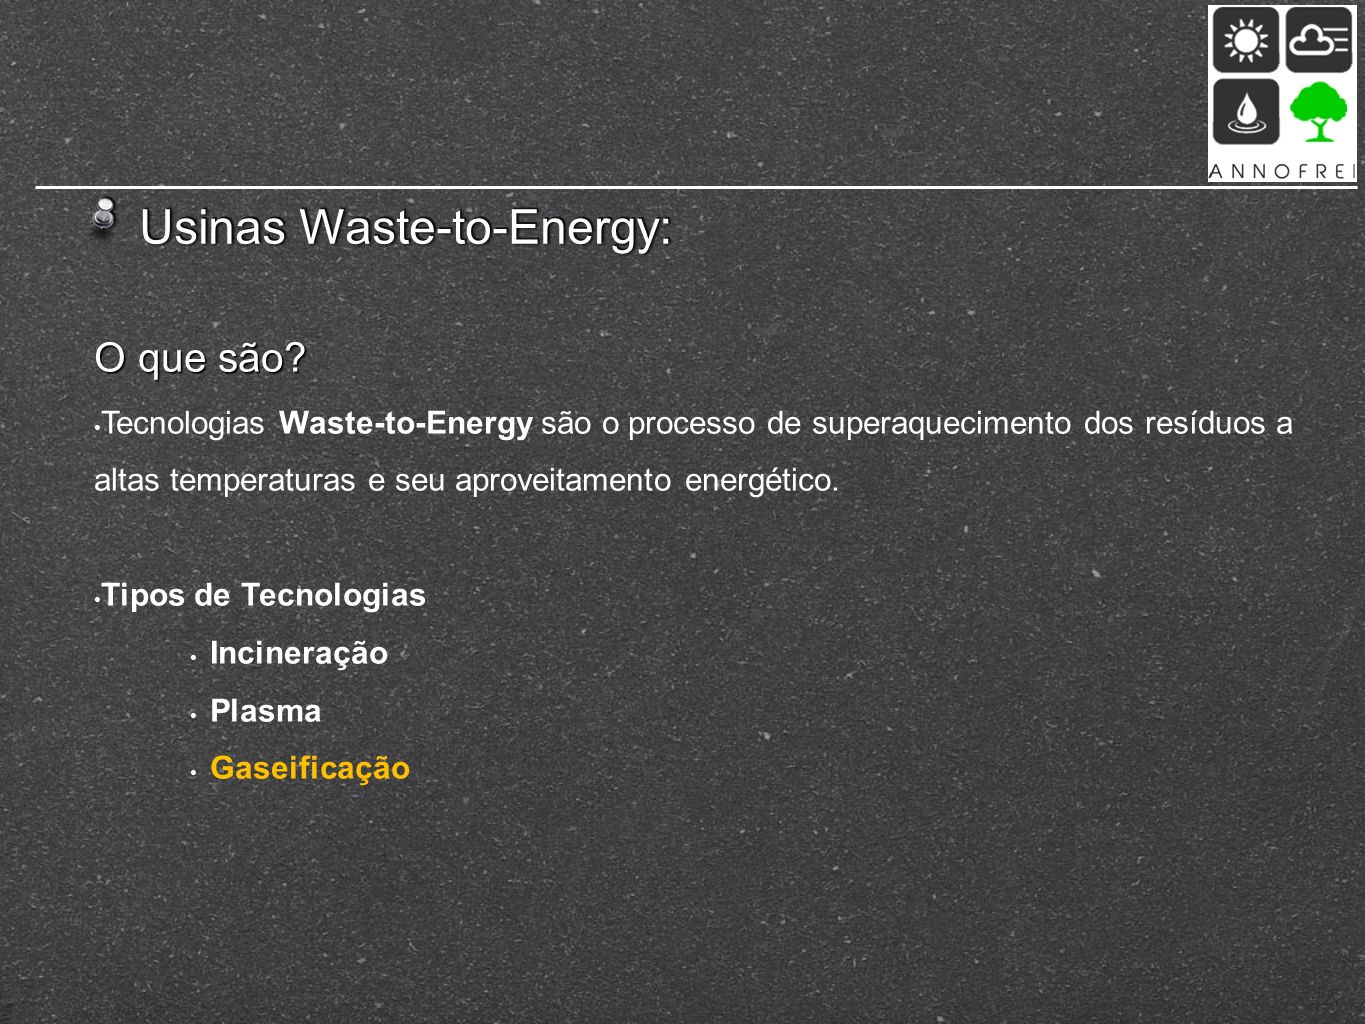 Usinas Waste-to-Energy: